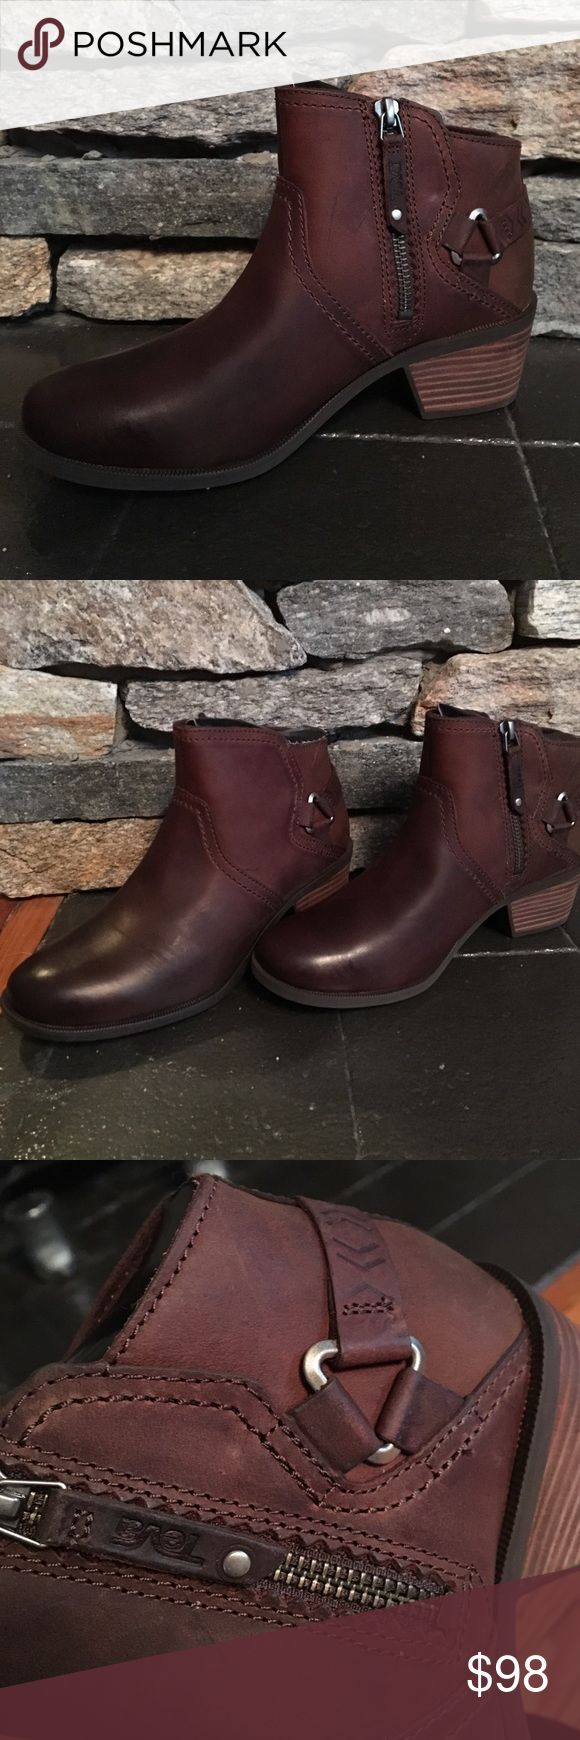 Brand New Teva Foxy Brown Ankle Boots Brand New never worn before Teva Foxy Ankle Boots. Original Packing included. Size 7. Teva Shoes Ankle Boots & Booties